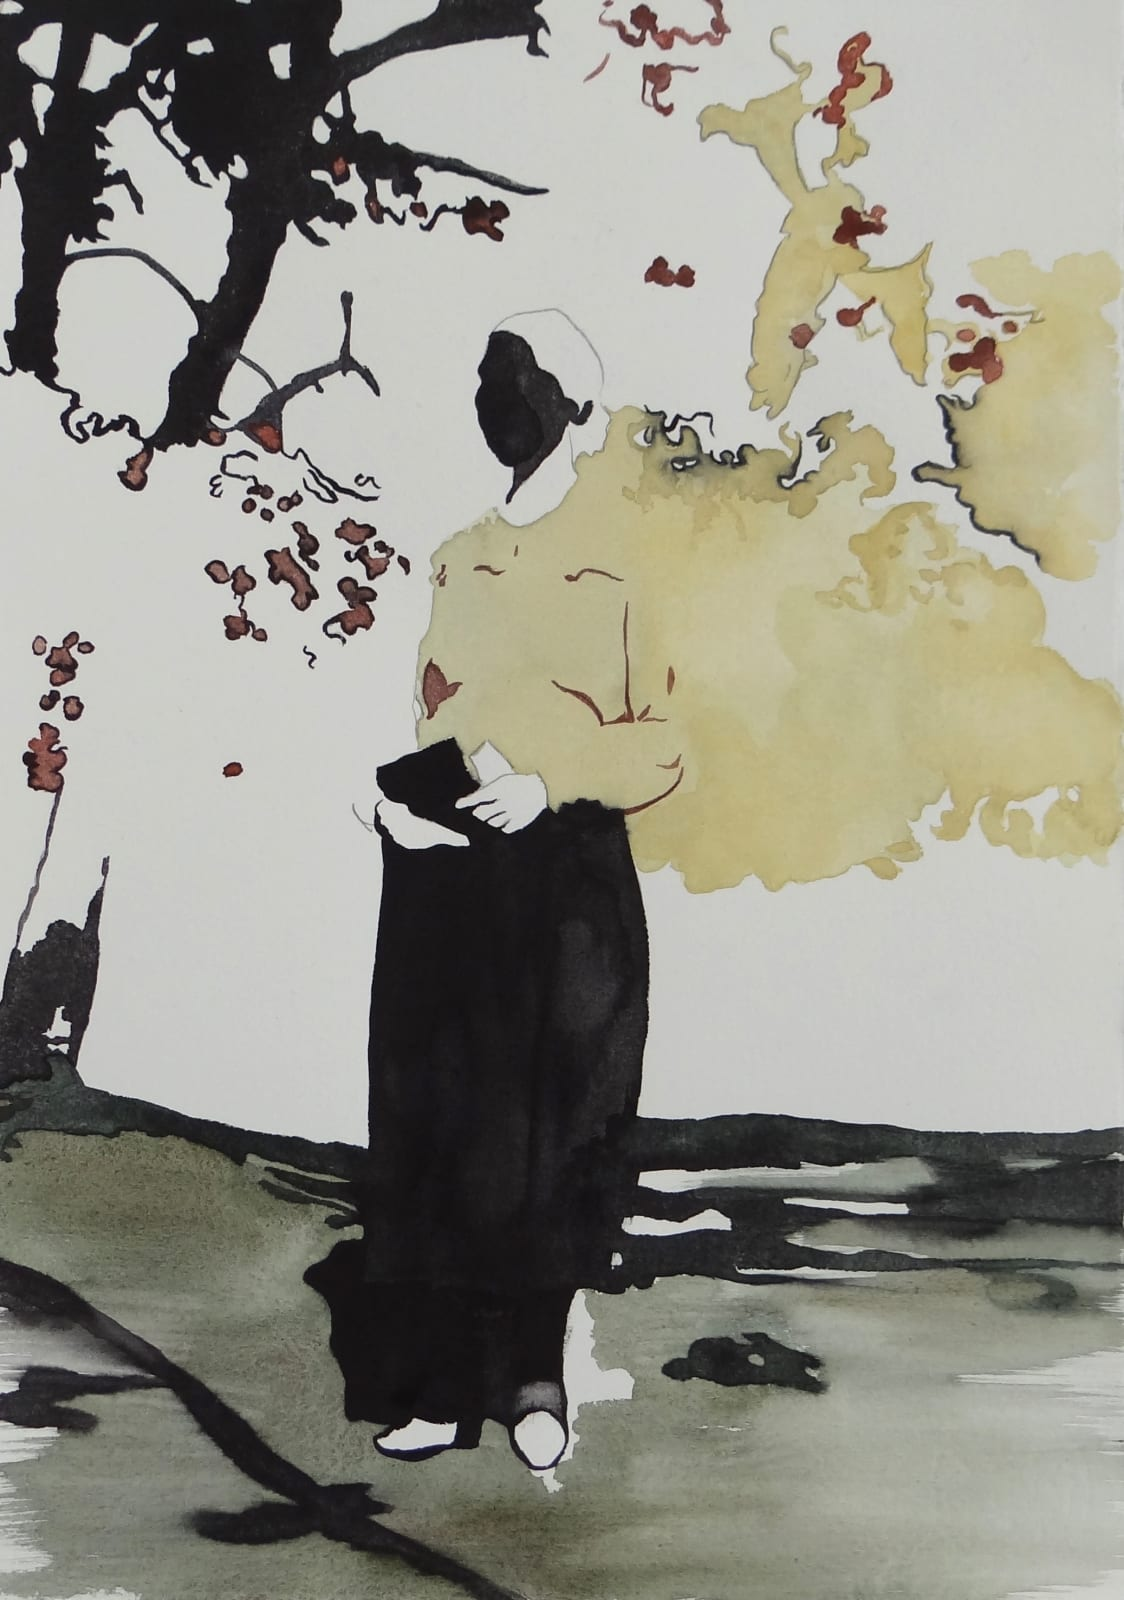 NATALIA OSSEF - THE MOMENT I SAW HER - 2015 - WATERCOLOR ON PAPER - 36 X 25 CM